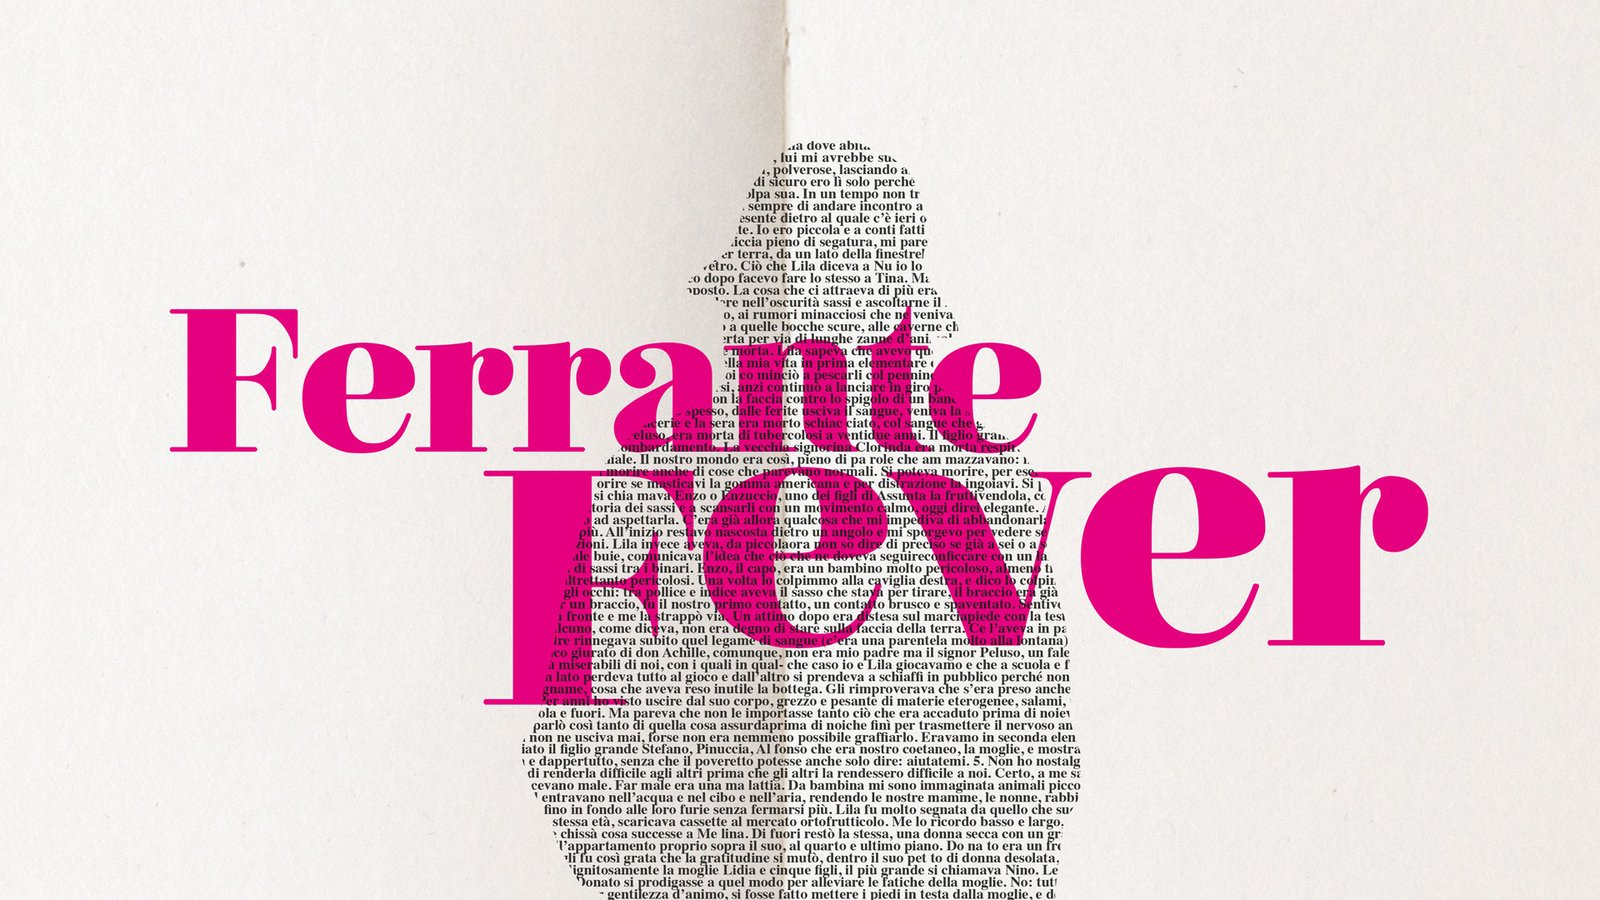 Ferrante Fever - The Work of Italian Author Elena Ferrante